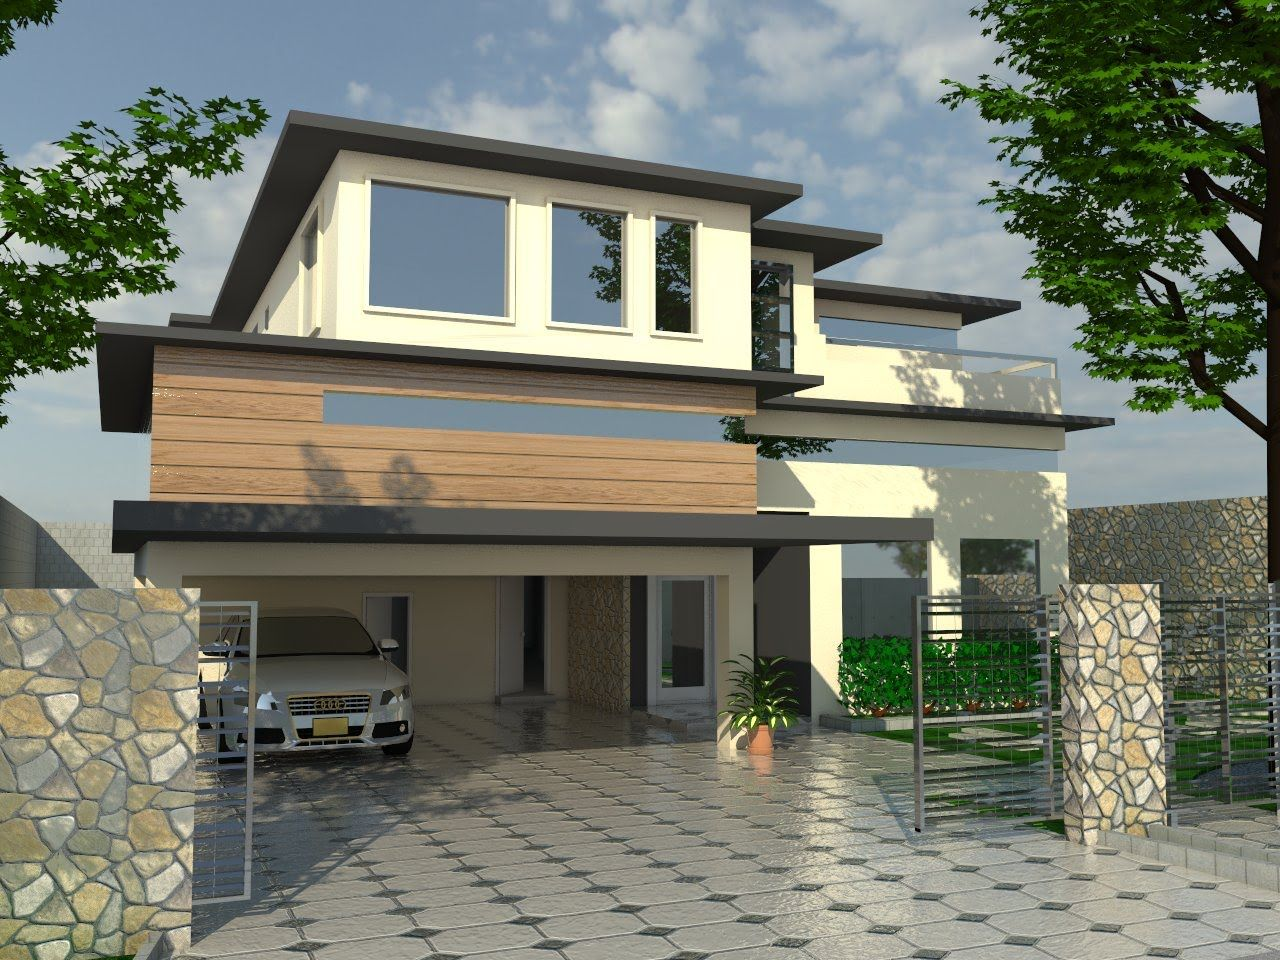 Captivating Sketchup Designsketchup House Rendering Part8 Youtube Luxury Sketchup